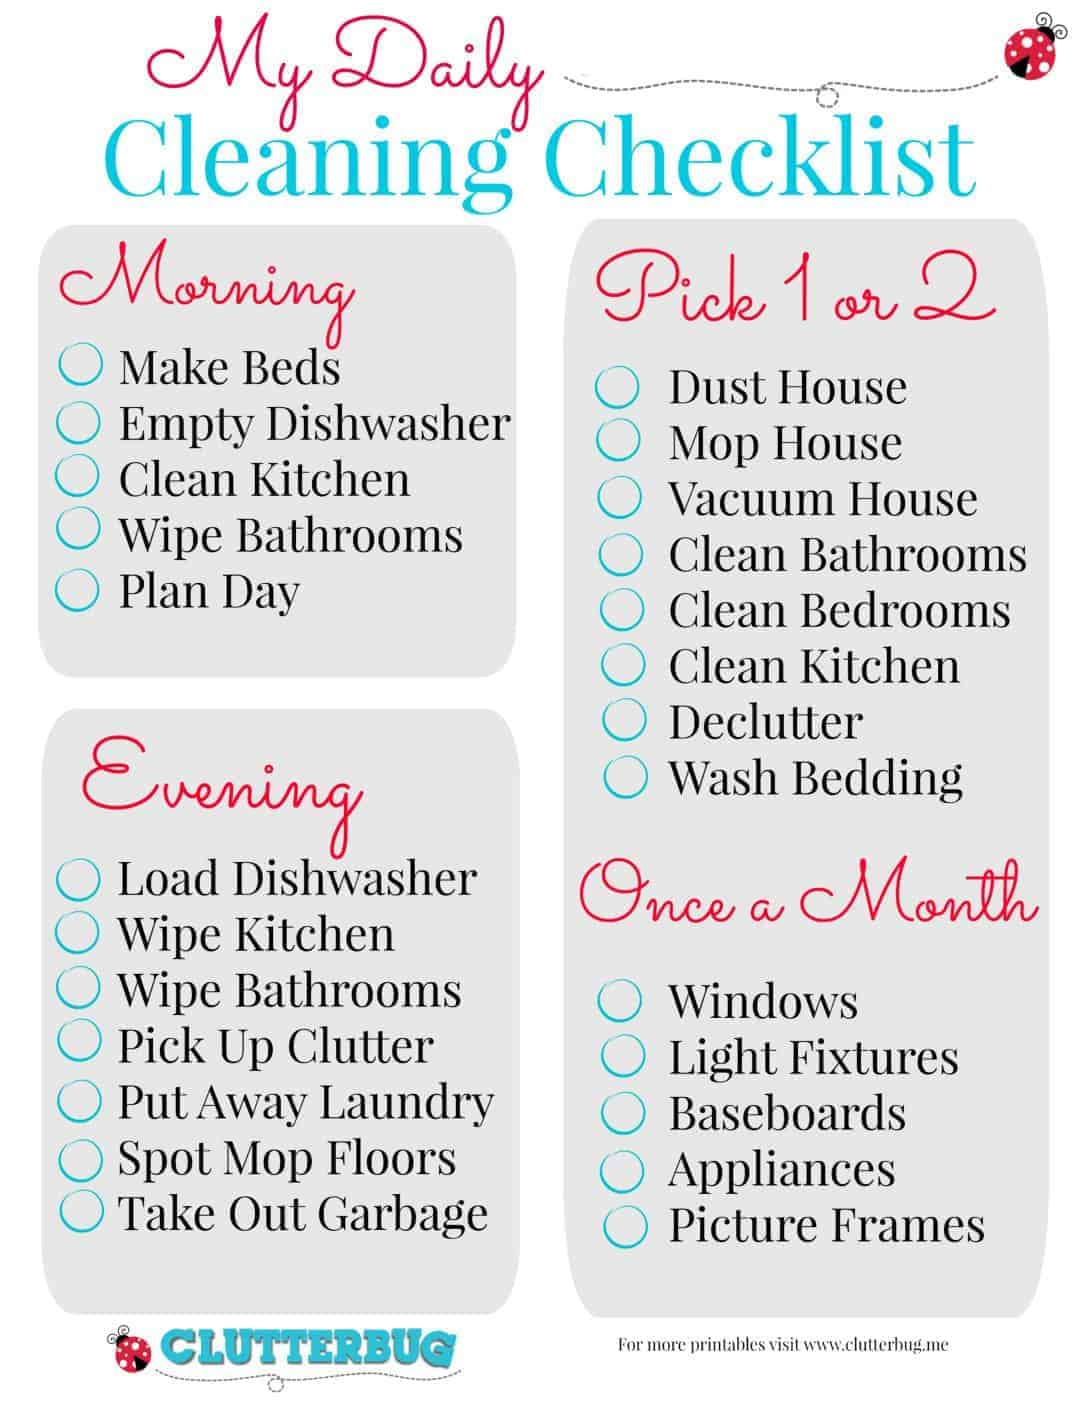 My Daily Cleaning Checklist | ClutterBug.Me